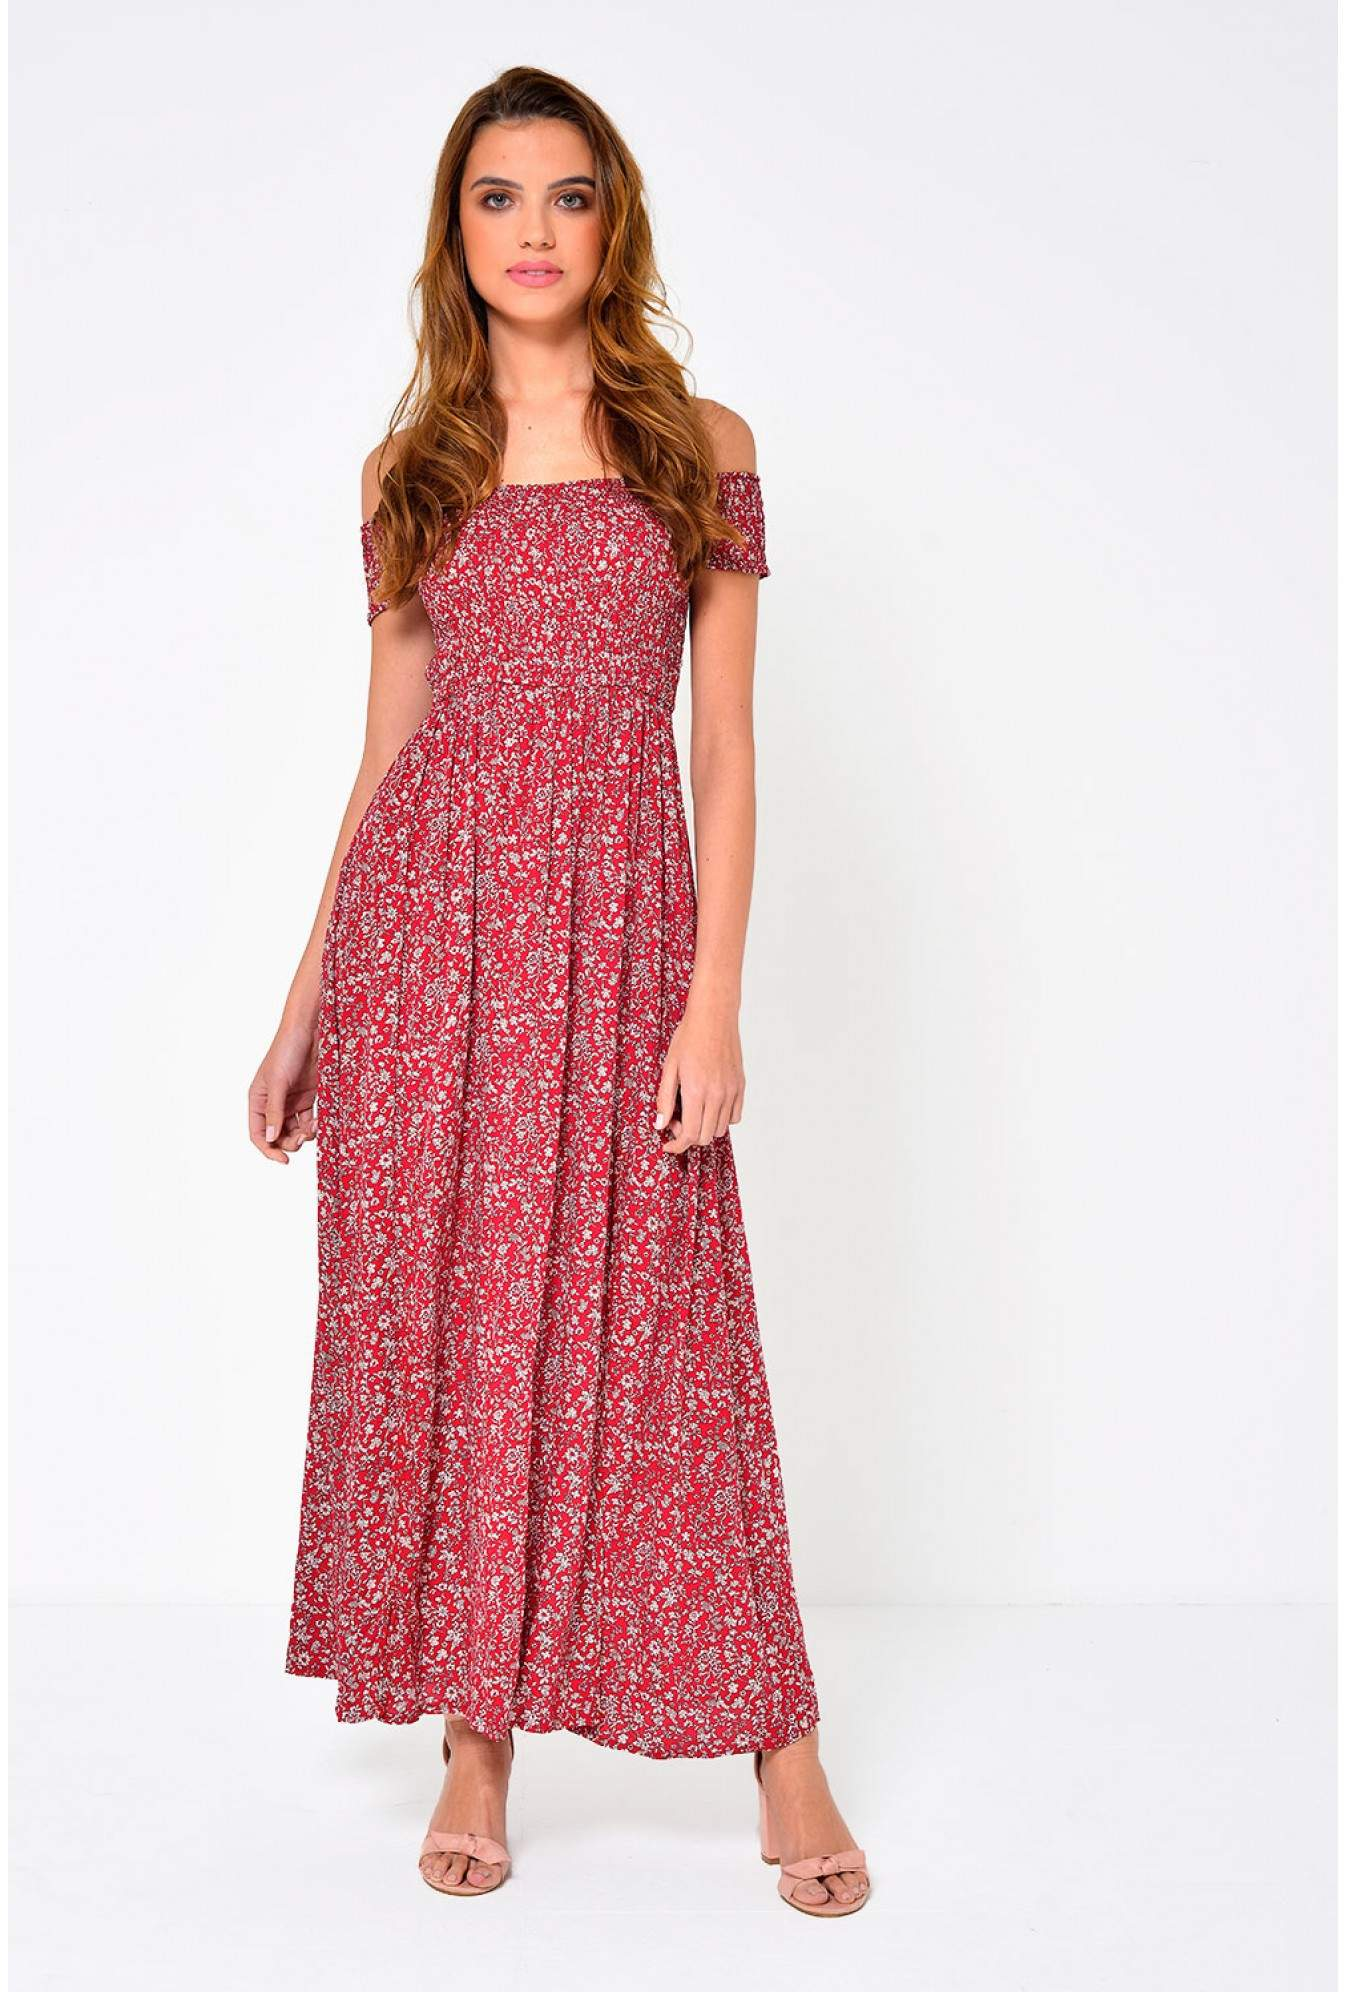 7ead86edf2a2 More Views. Kerry Off Shoulder Floral Maxi Dress in Red